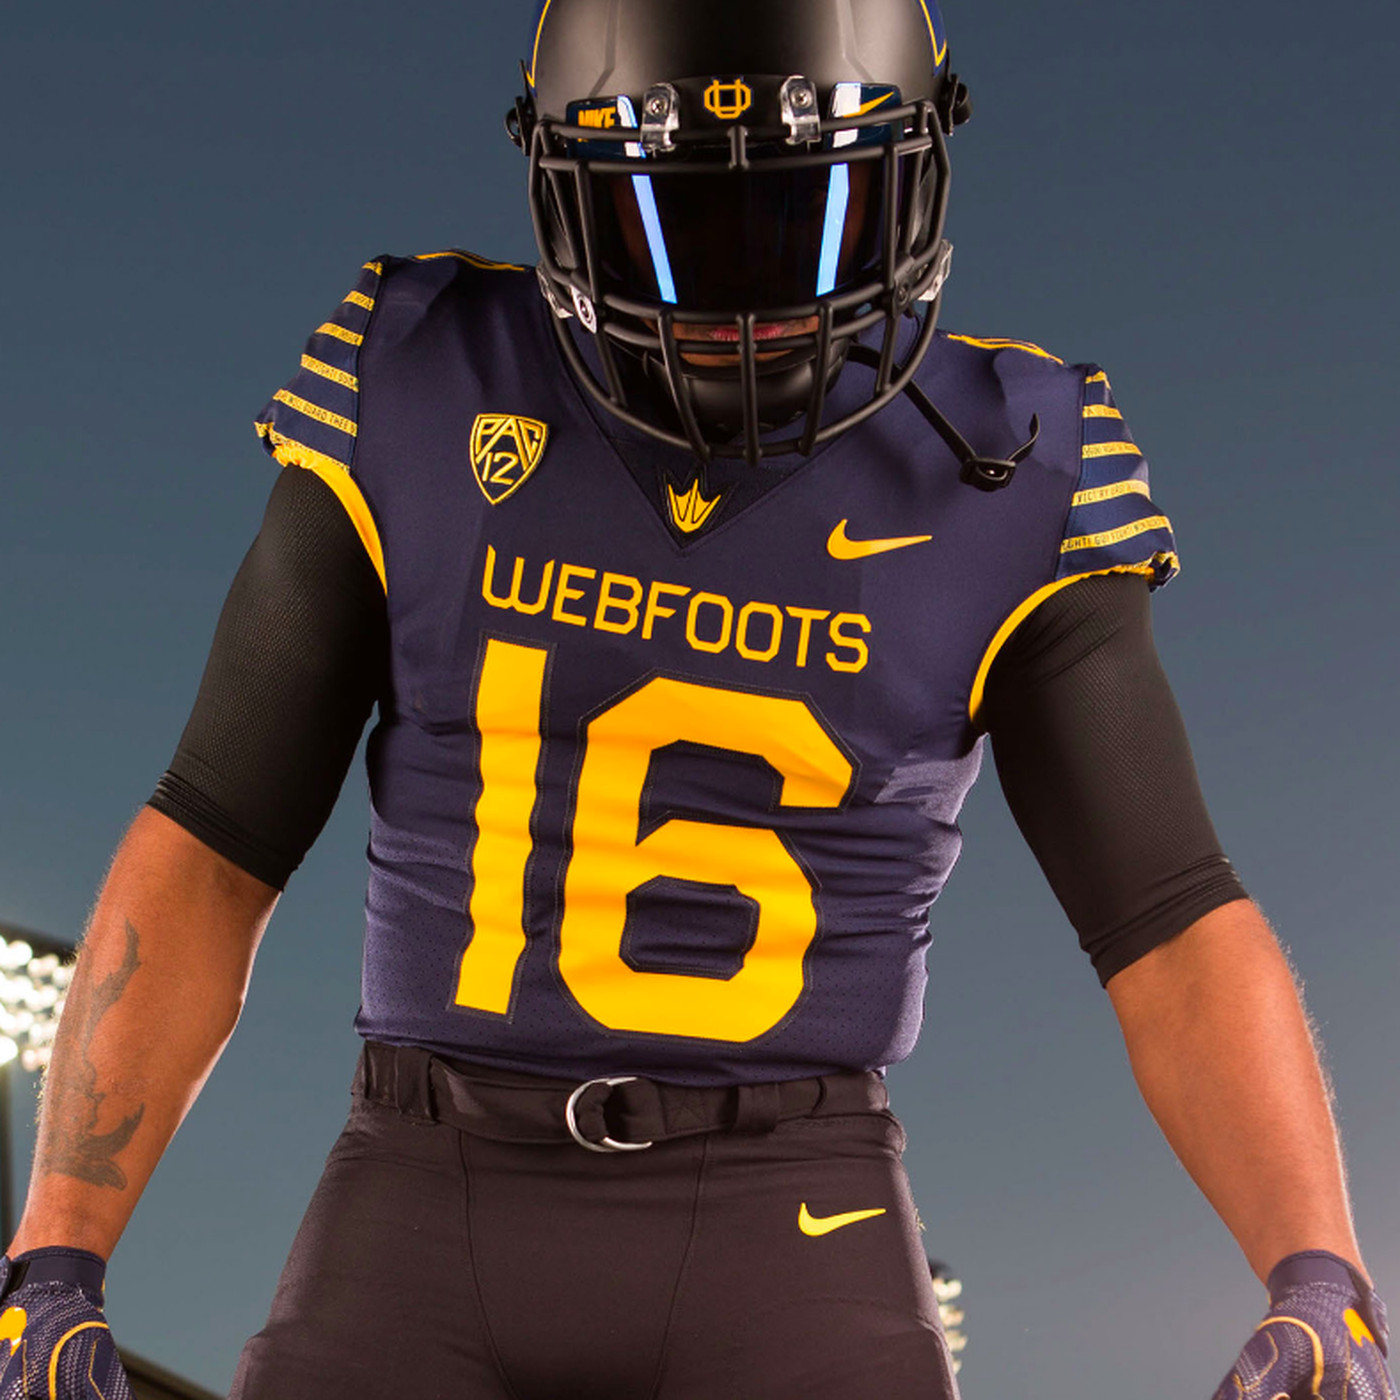 buy online 05c96 bd493 Why Oregon's wearing blue-and-gold uniforms that say ...